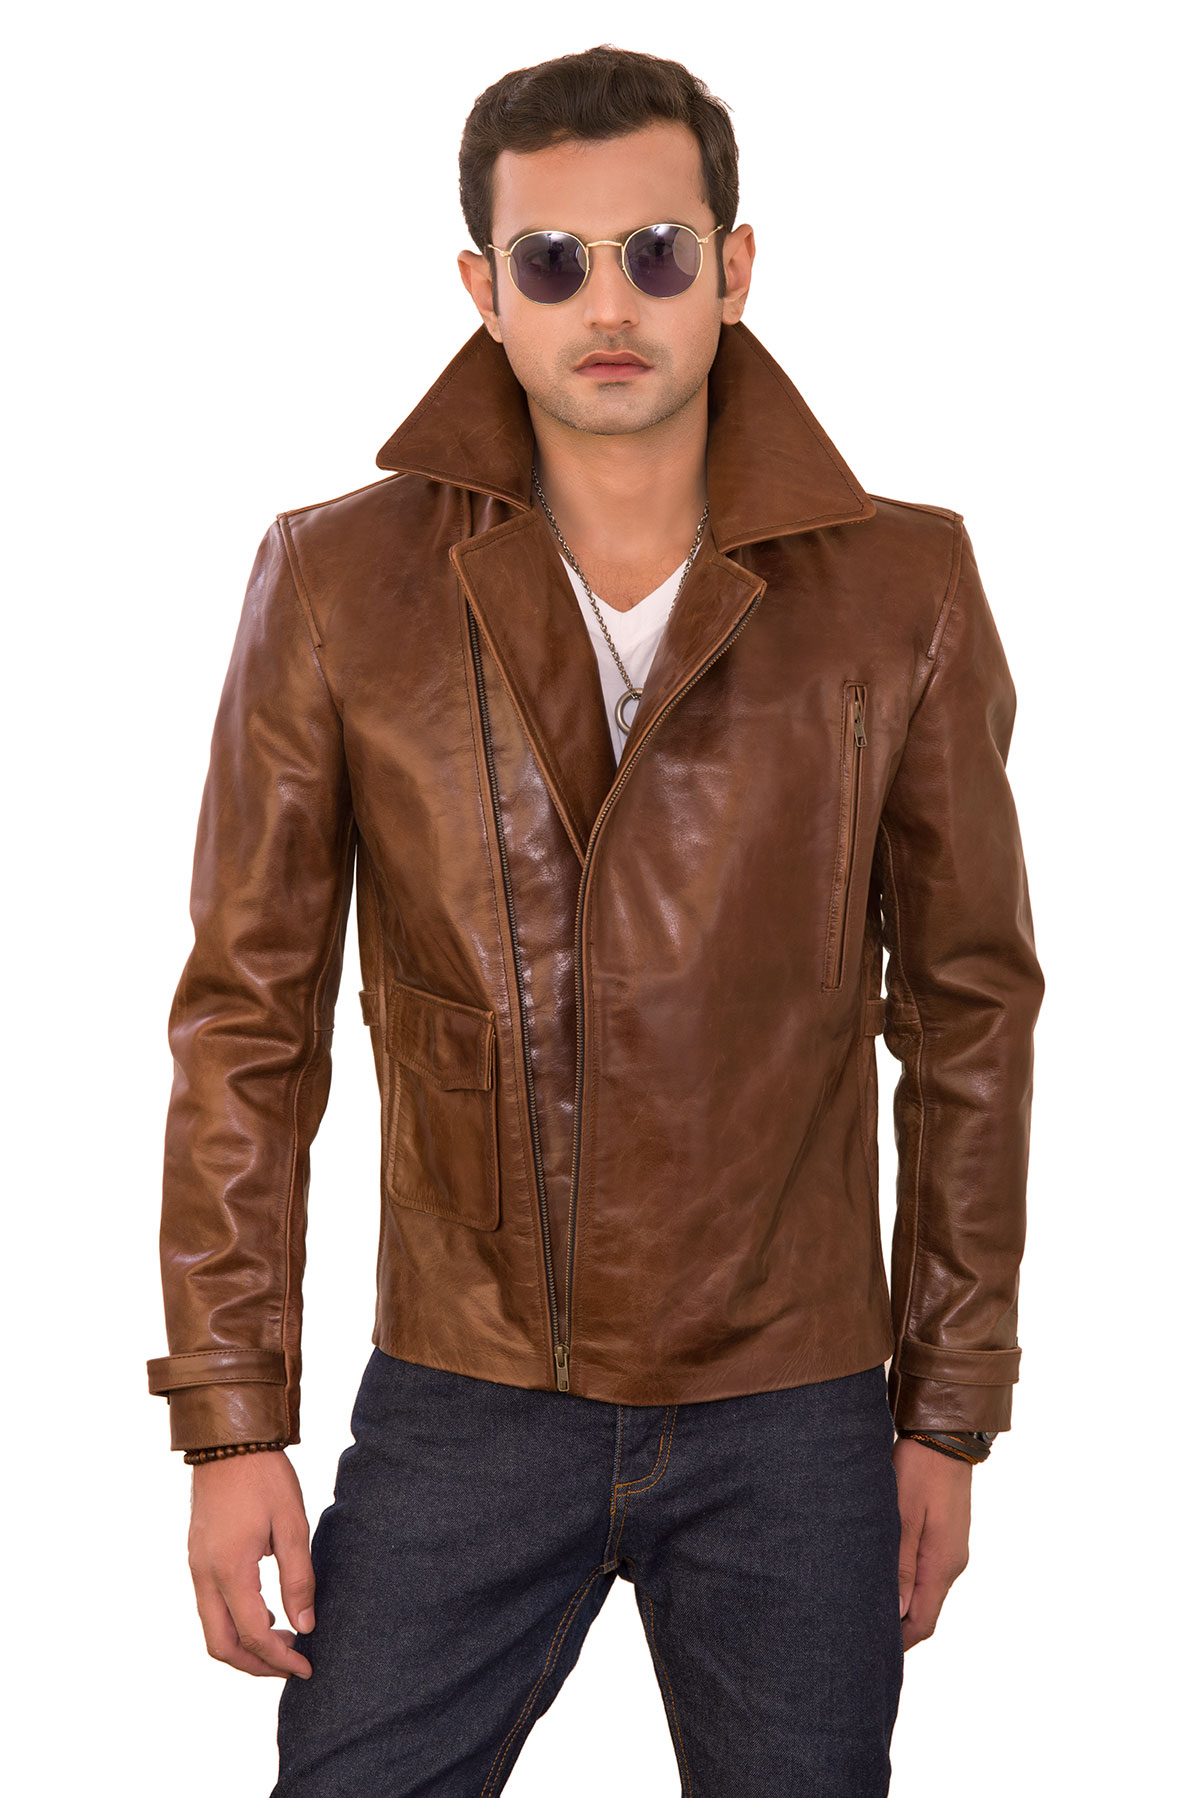 white leather jacket mens outfit